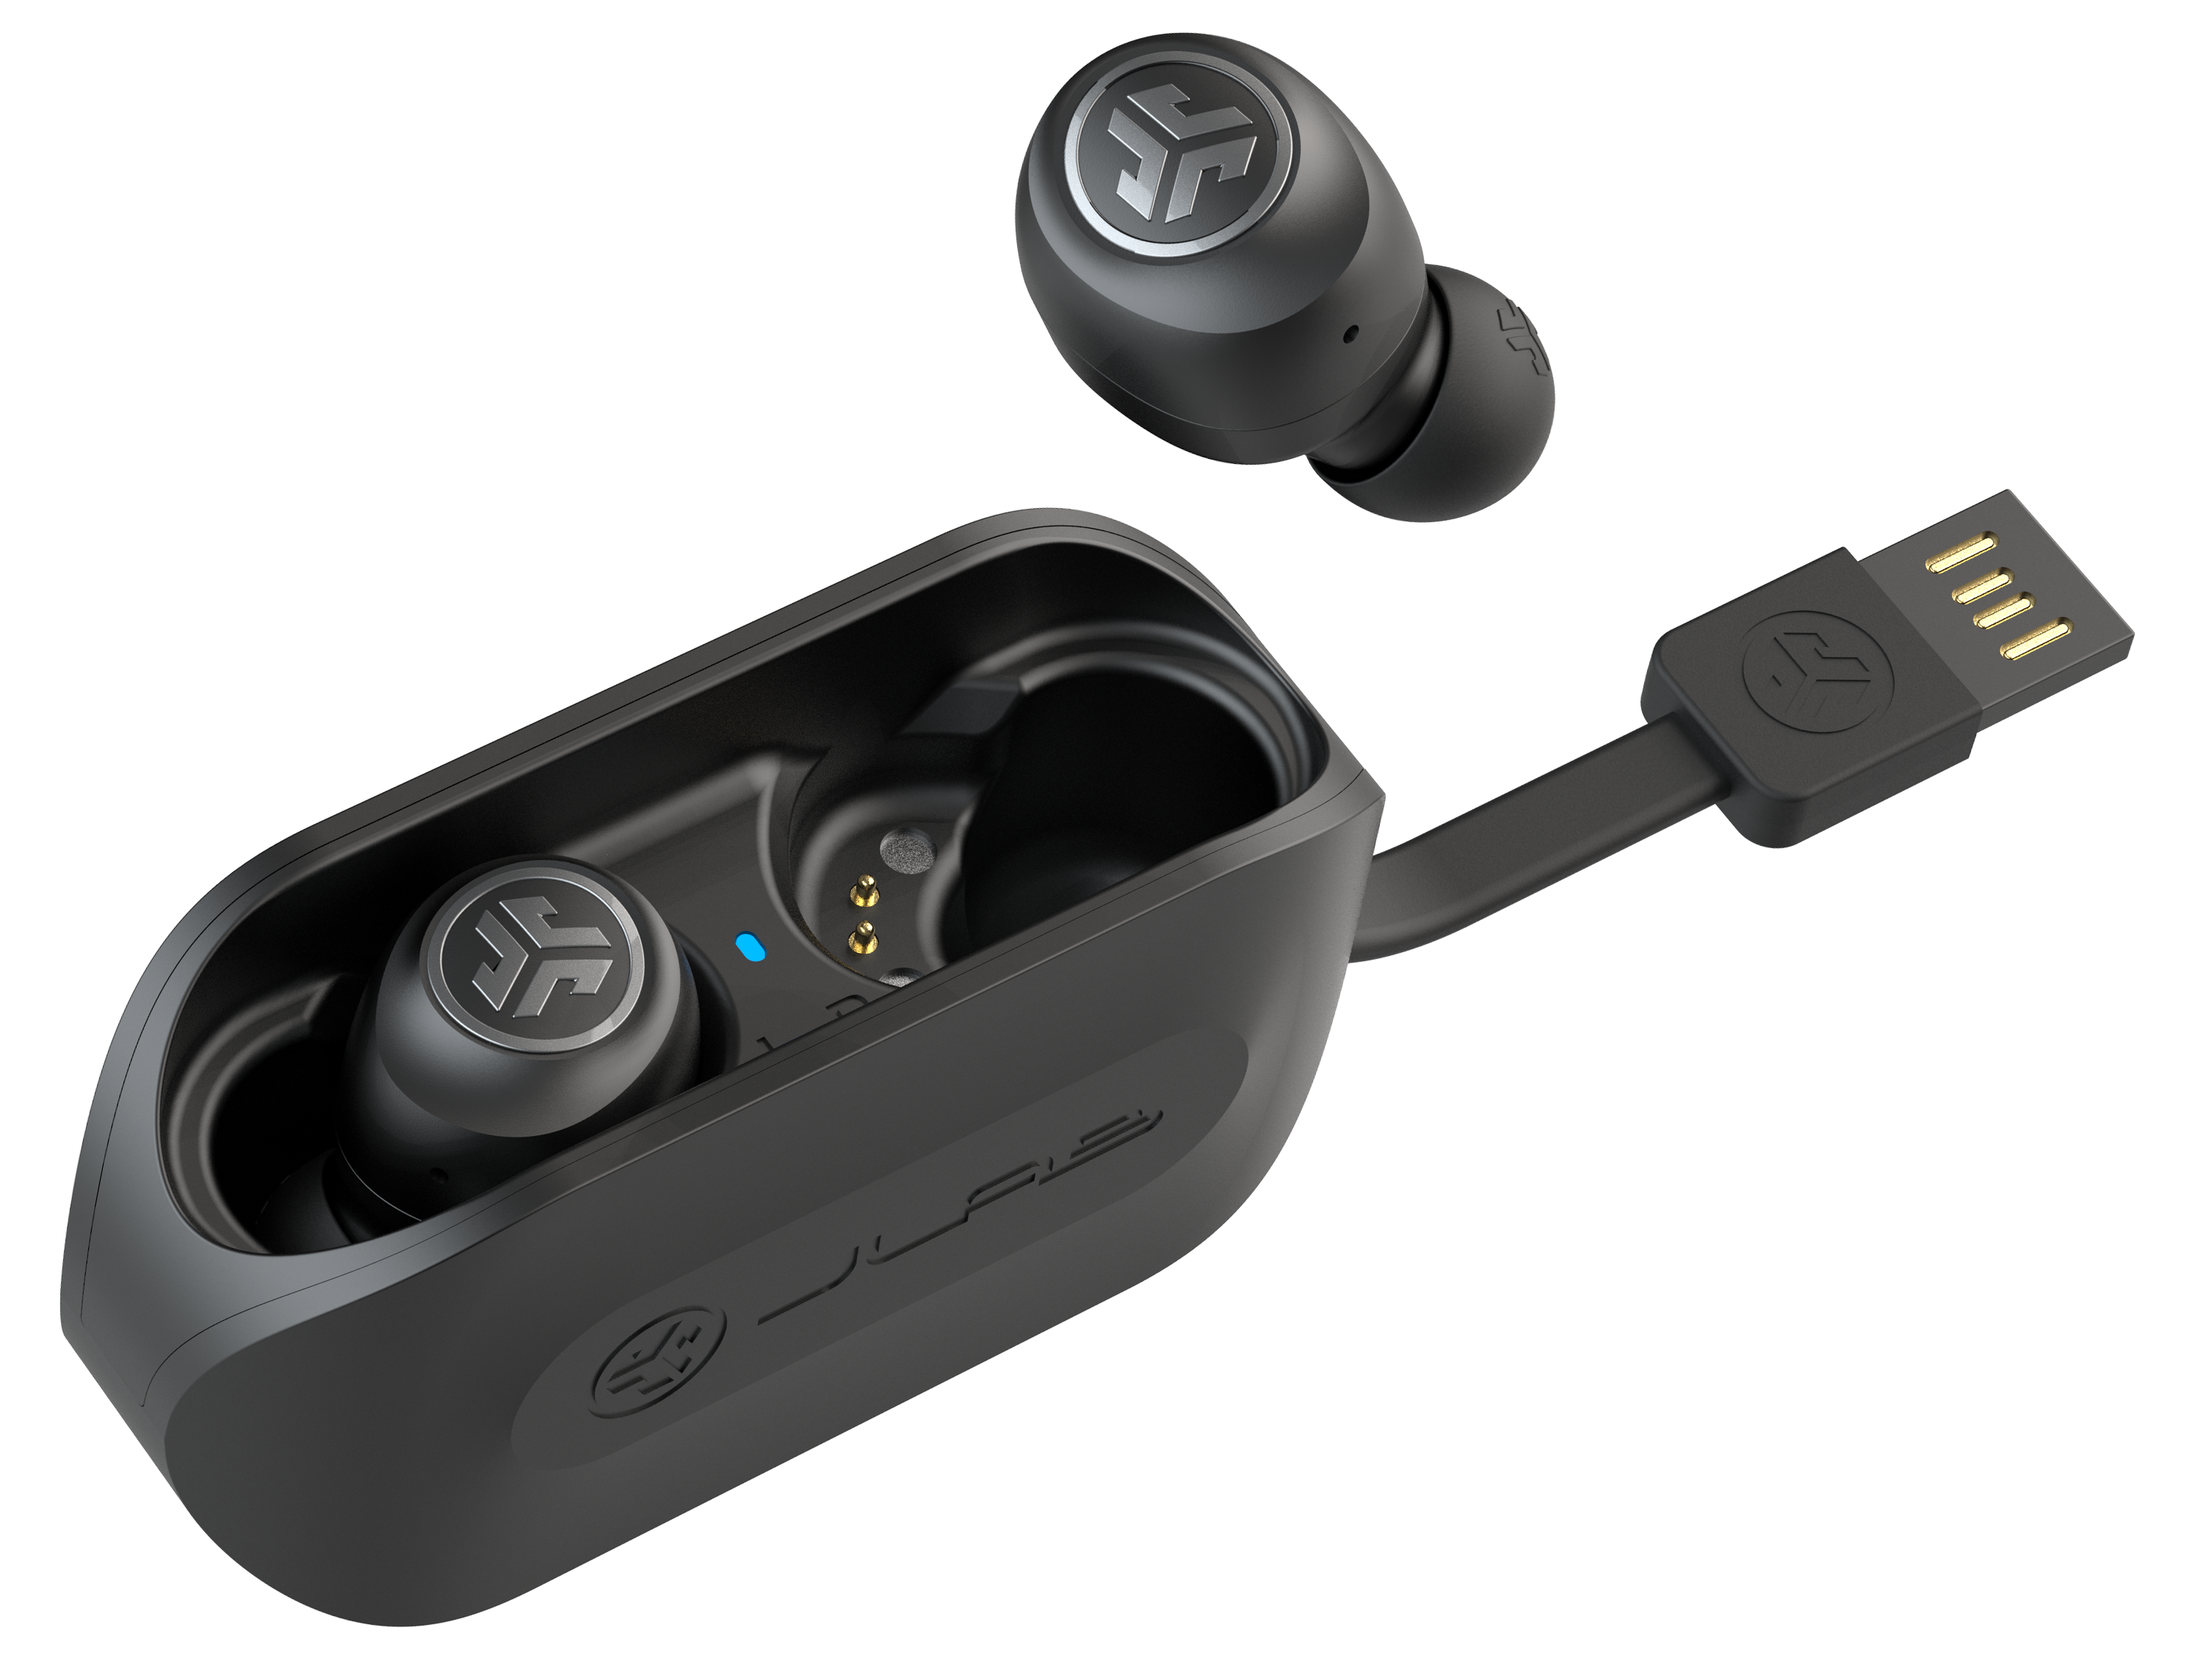 JBuds Air True Wireless Earbuds Oordopjes in oplaadetui met geïntegreerde USB-kabel